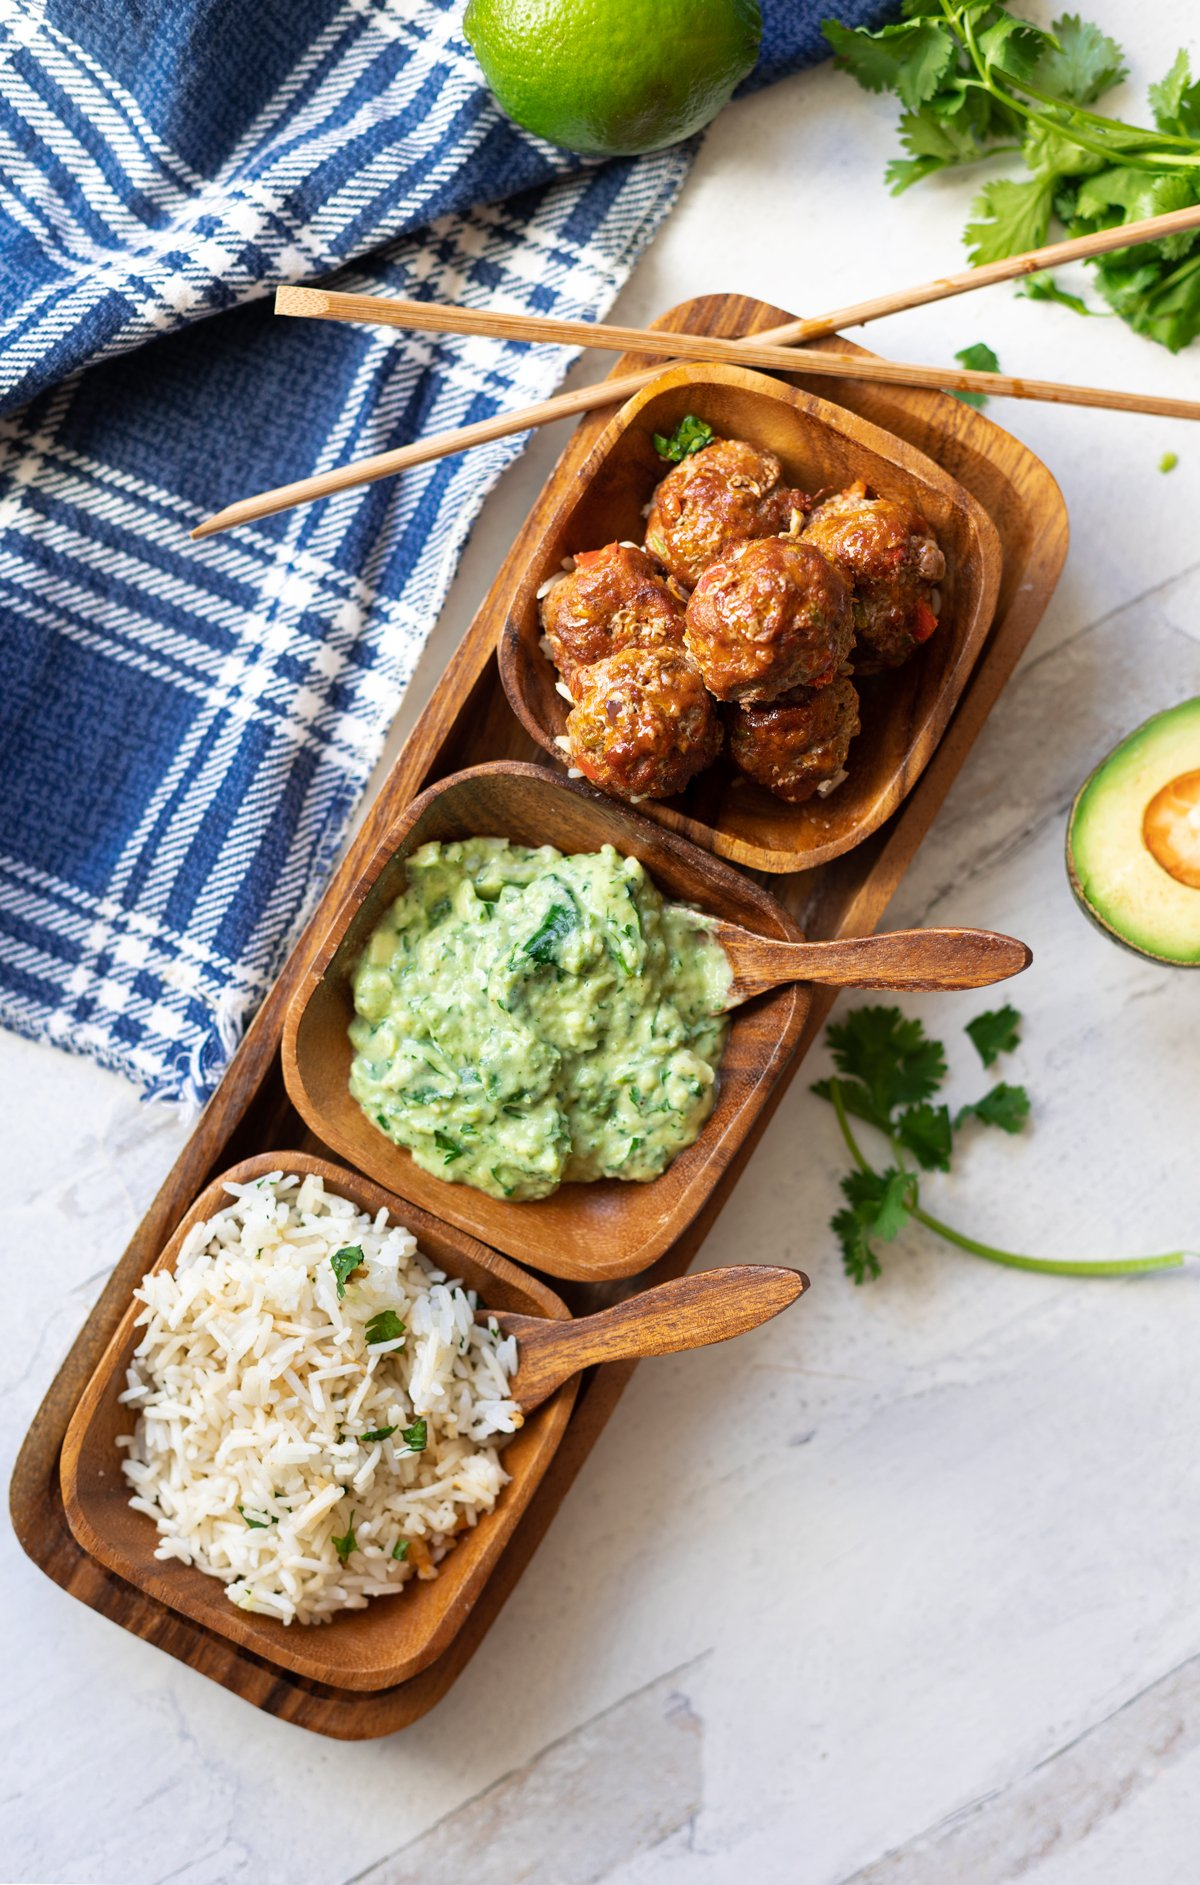 Rice, avocado sauce, and meatballs in a serving dish with chopsticks.